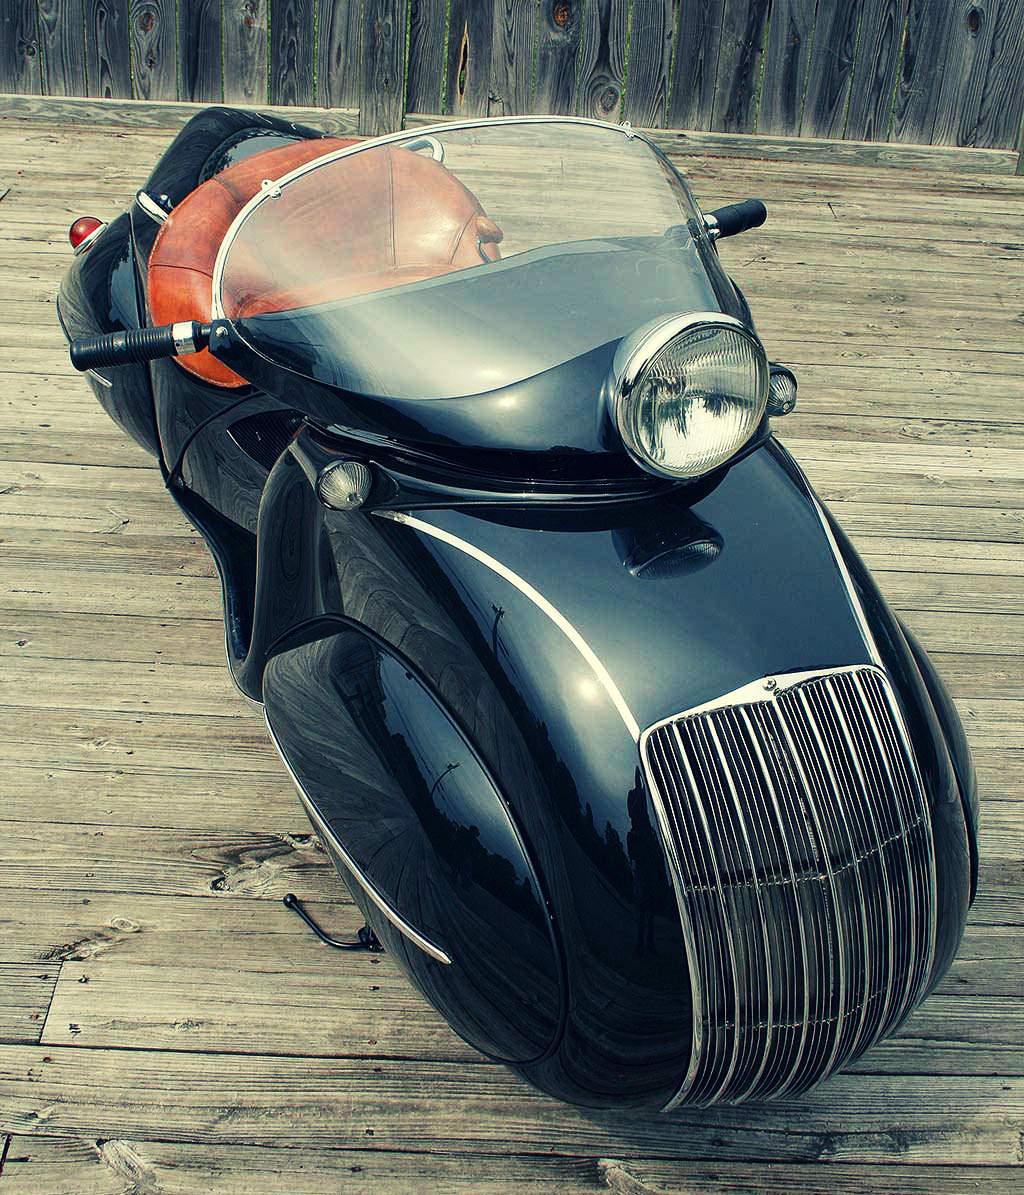 1930 Henderson Custom Motorcycle 2 1930 Henderson Custom Motorcycle